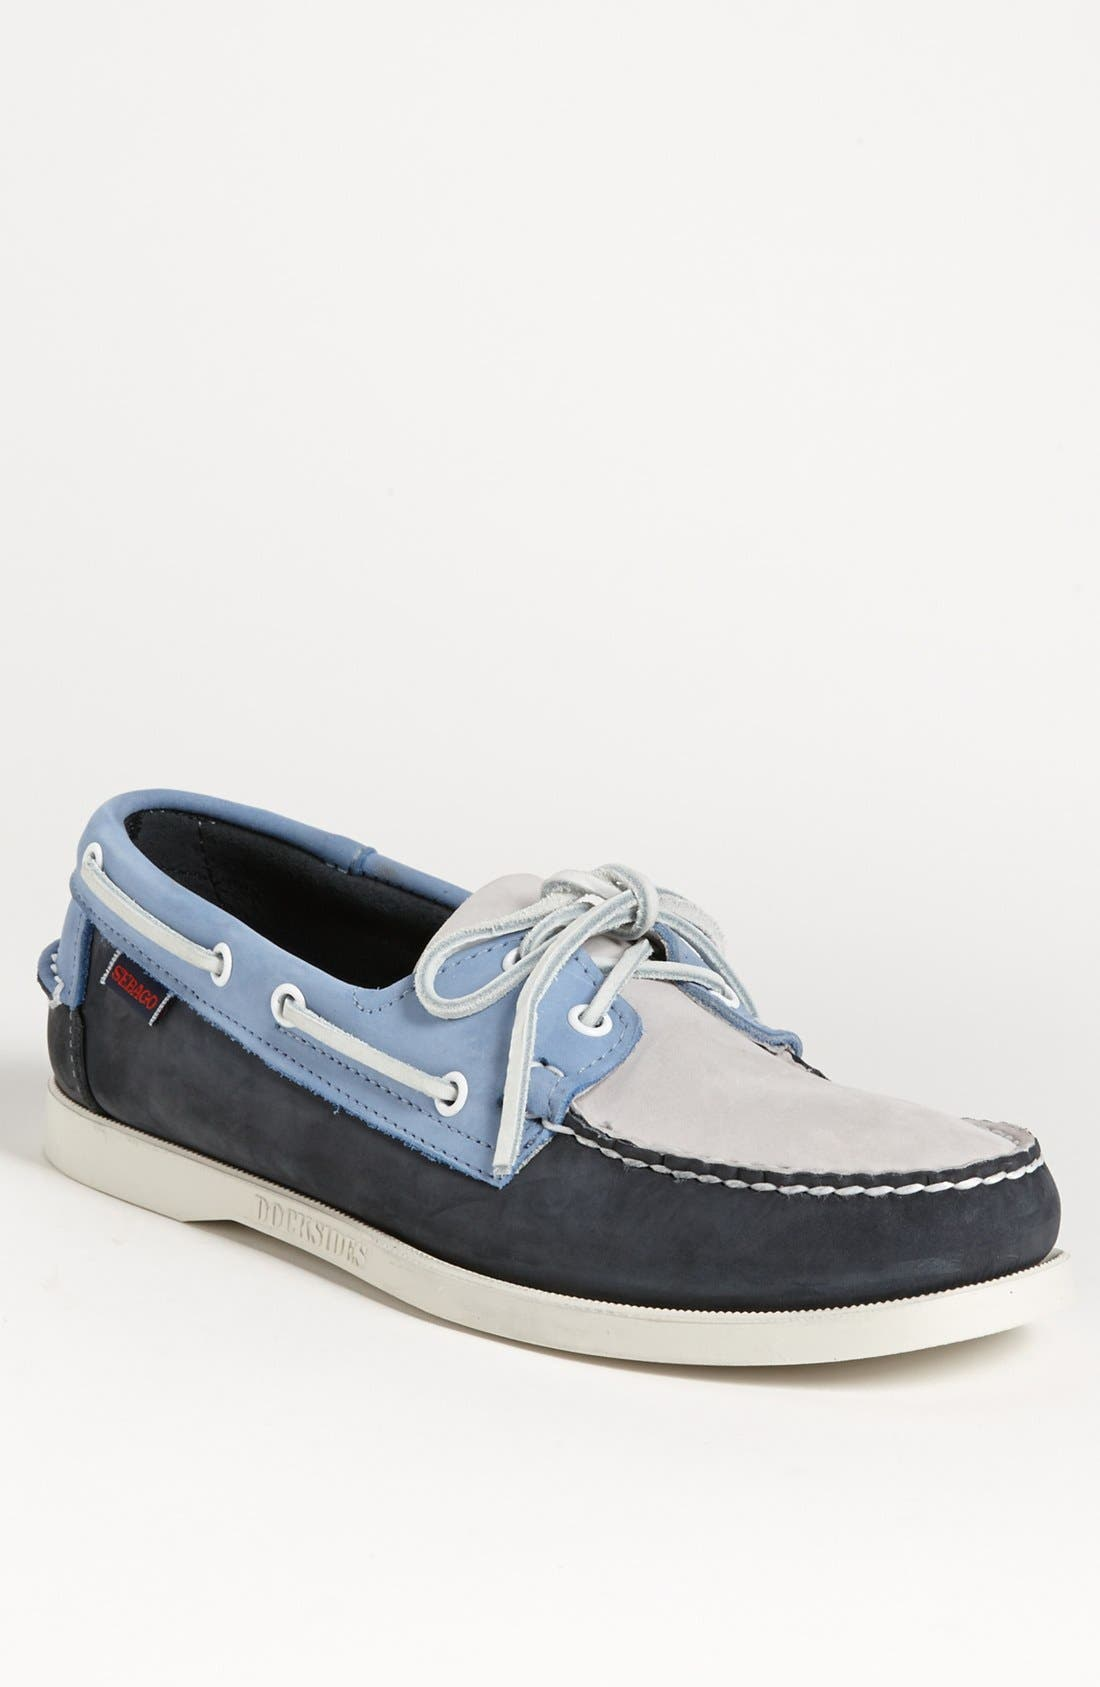 Alternate Image 1 Selected - Sebago 'Spinnaker' Boat Shoe (Men)